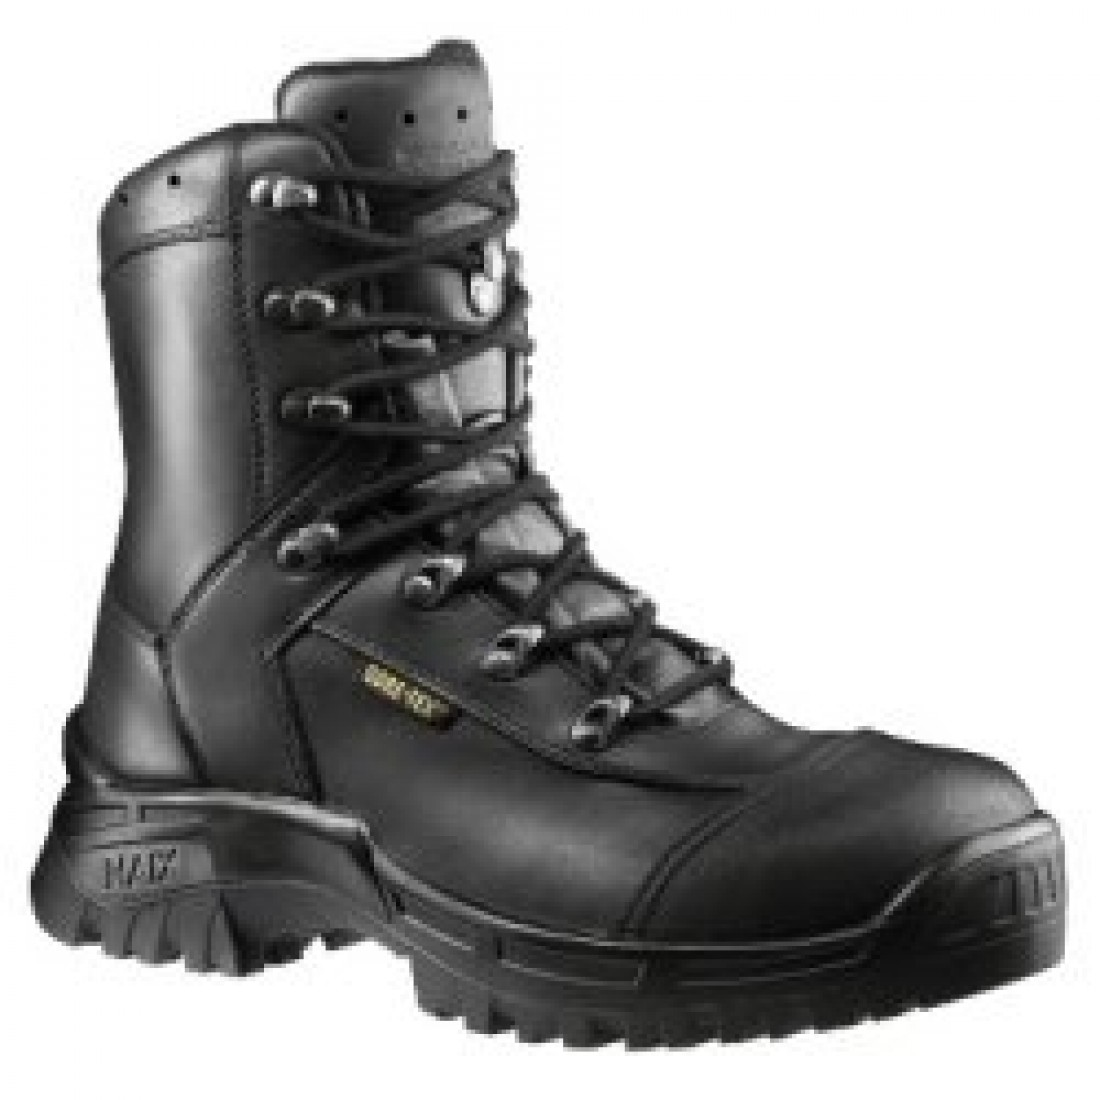 Haix Airpower X21 Safety Boots Sorbus International